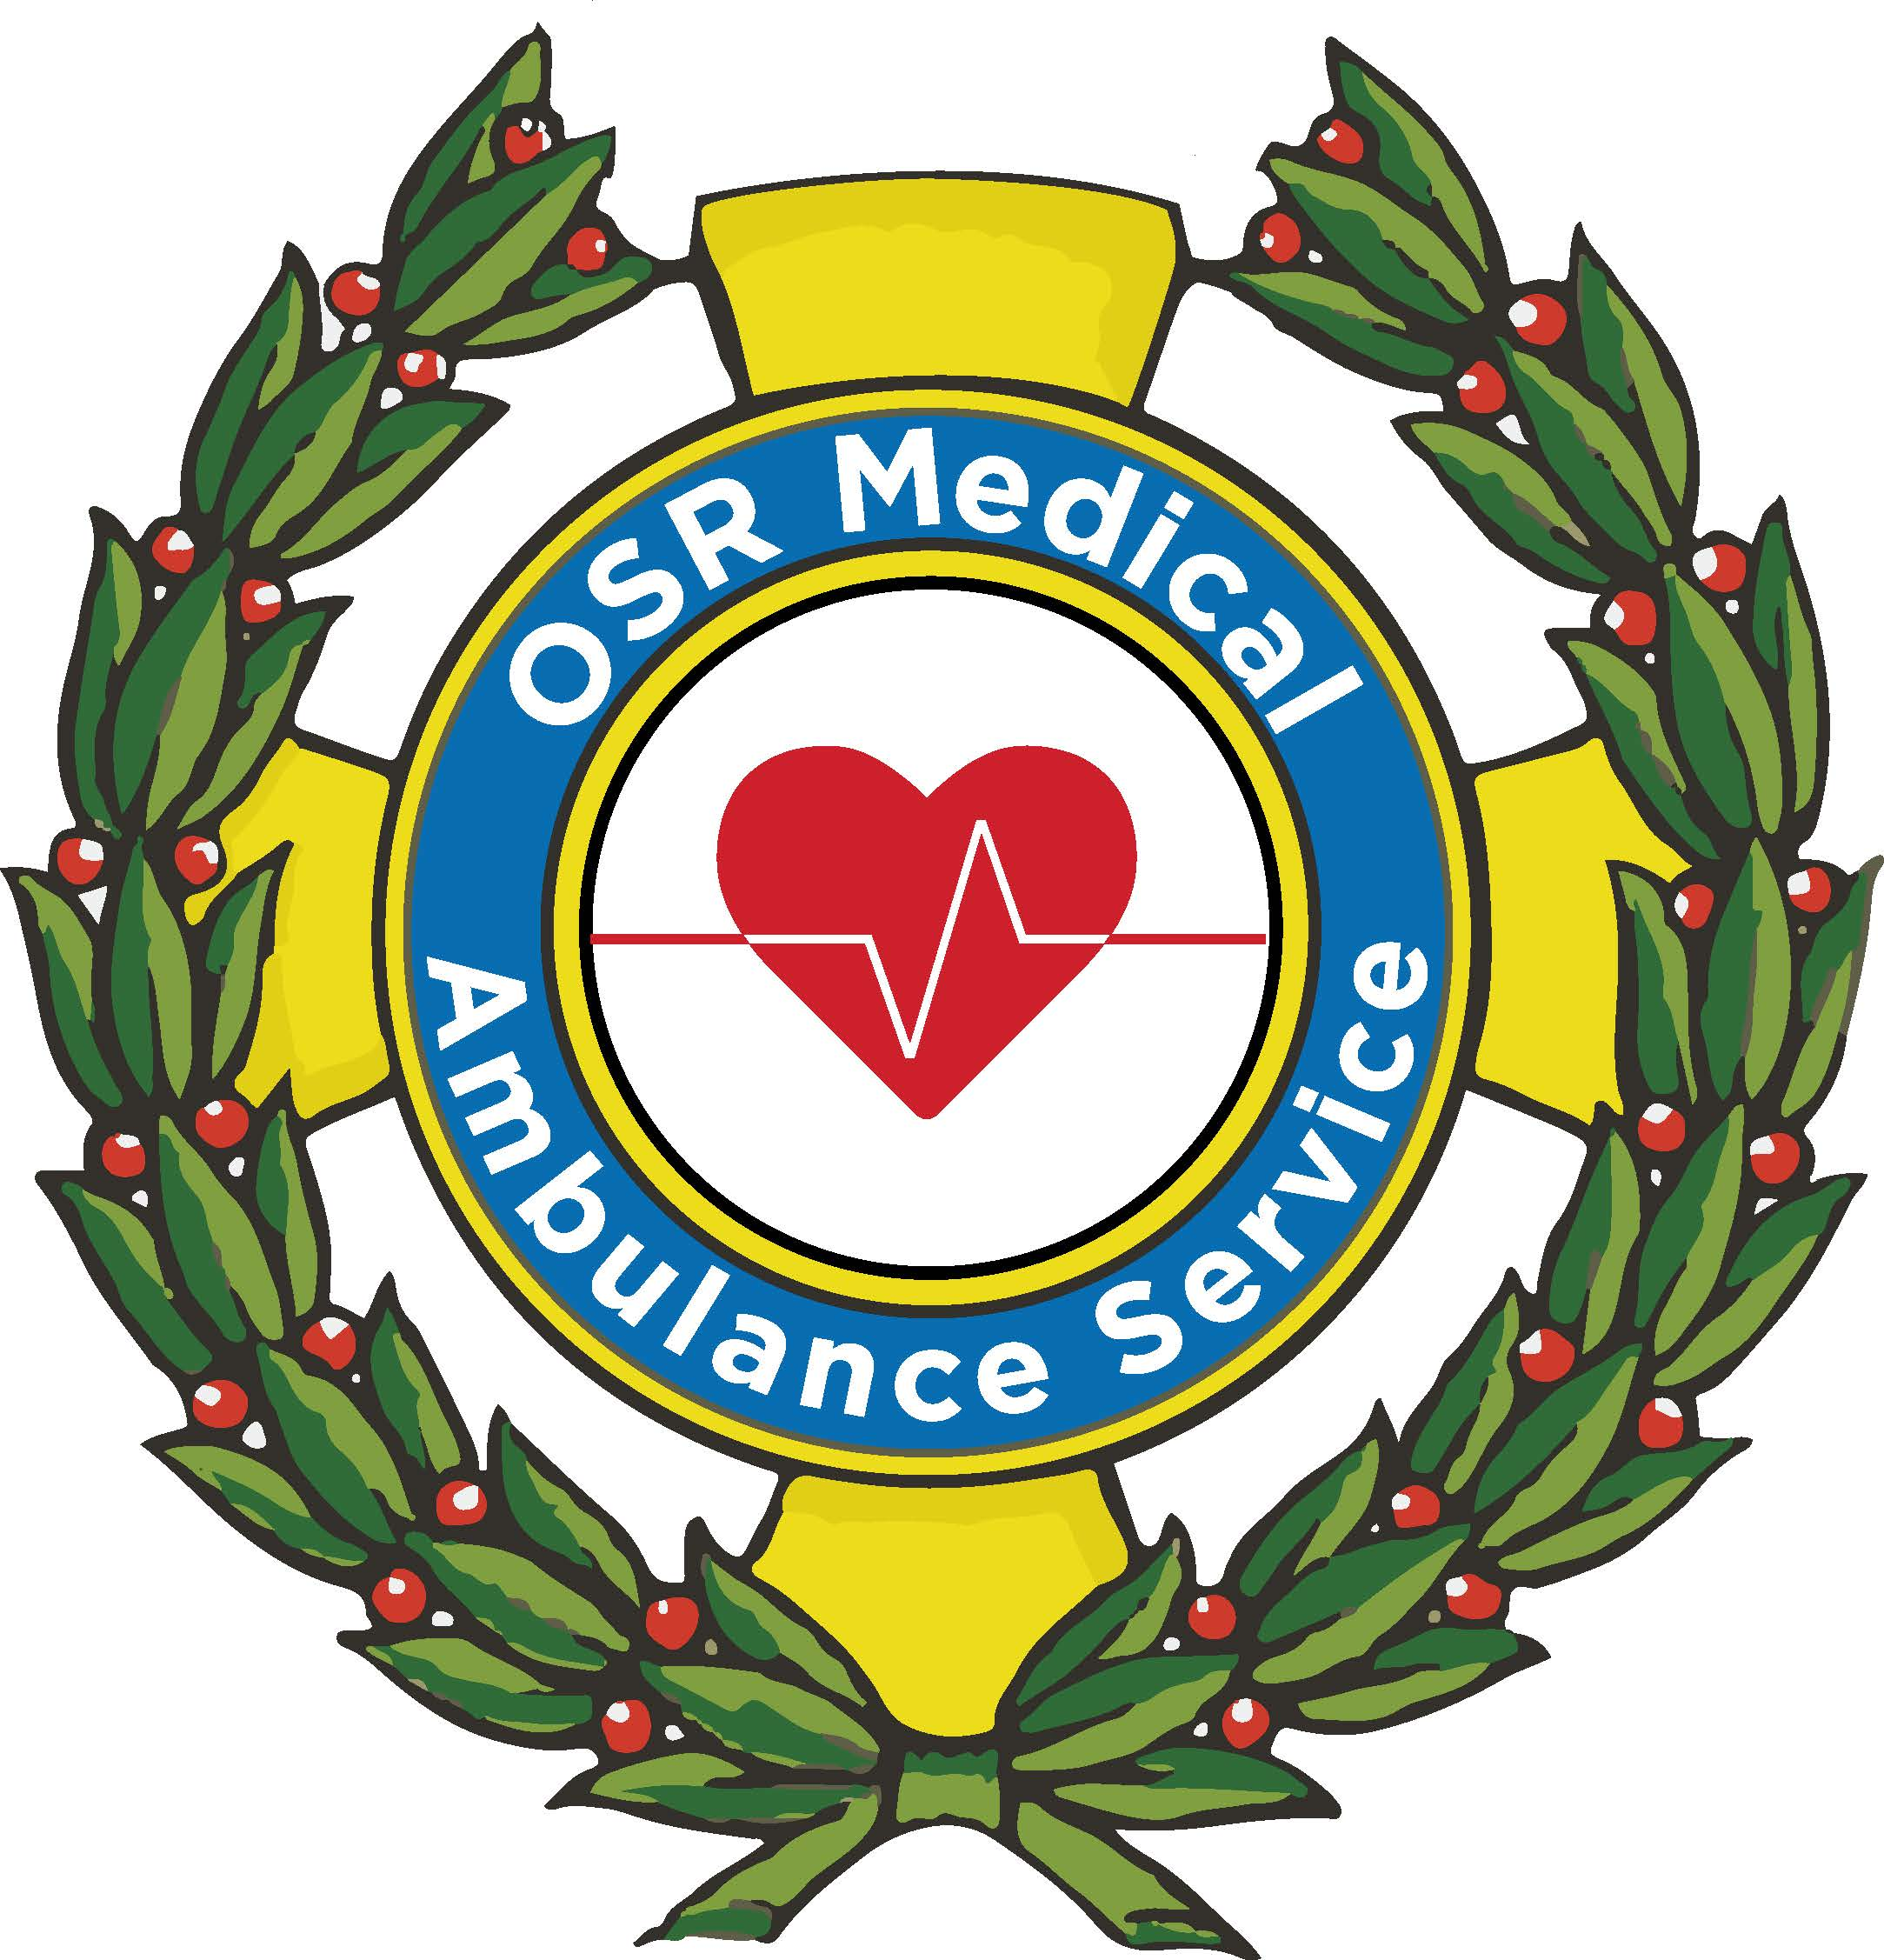 OSR Medical Ambulance Service - Quote. Contact Us, About Us, Services, Calculator. Feedback, Descriptions, NEMS, Home, Policies, Privacy, Recruitment